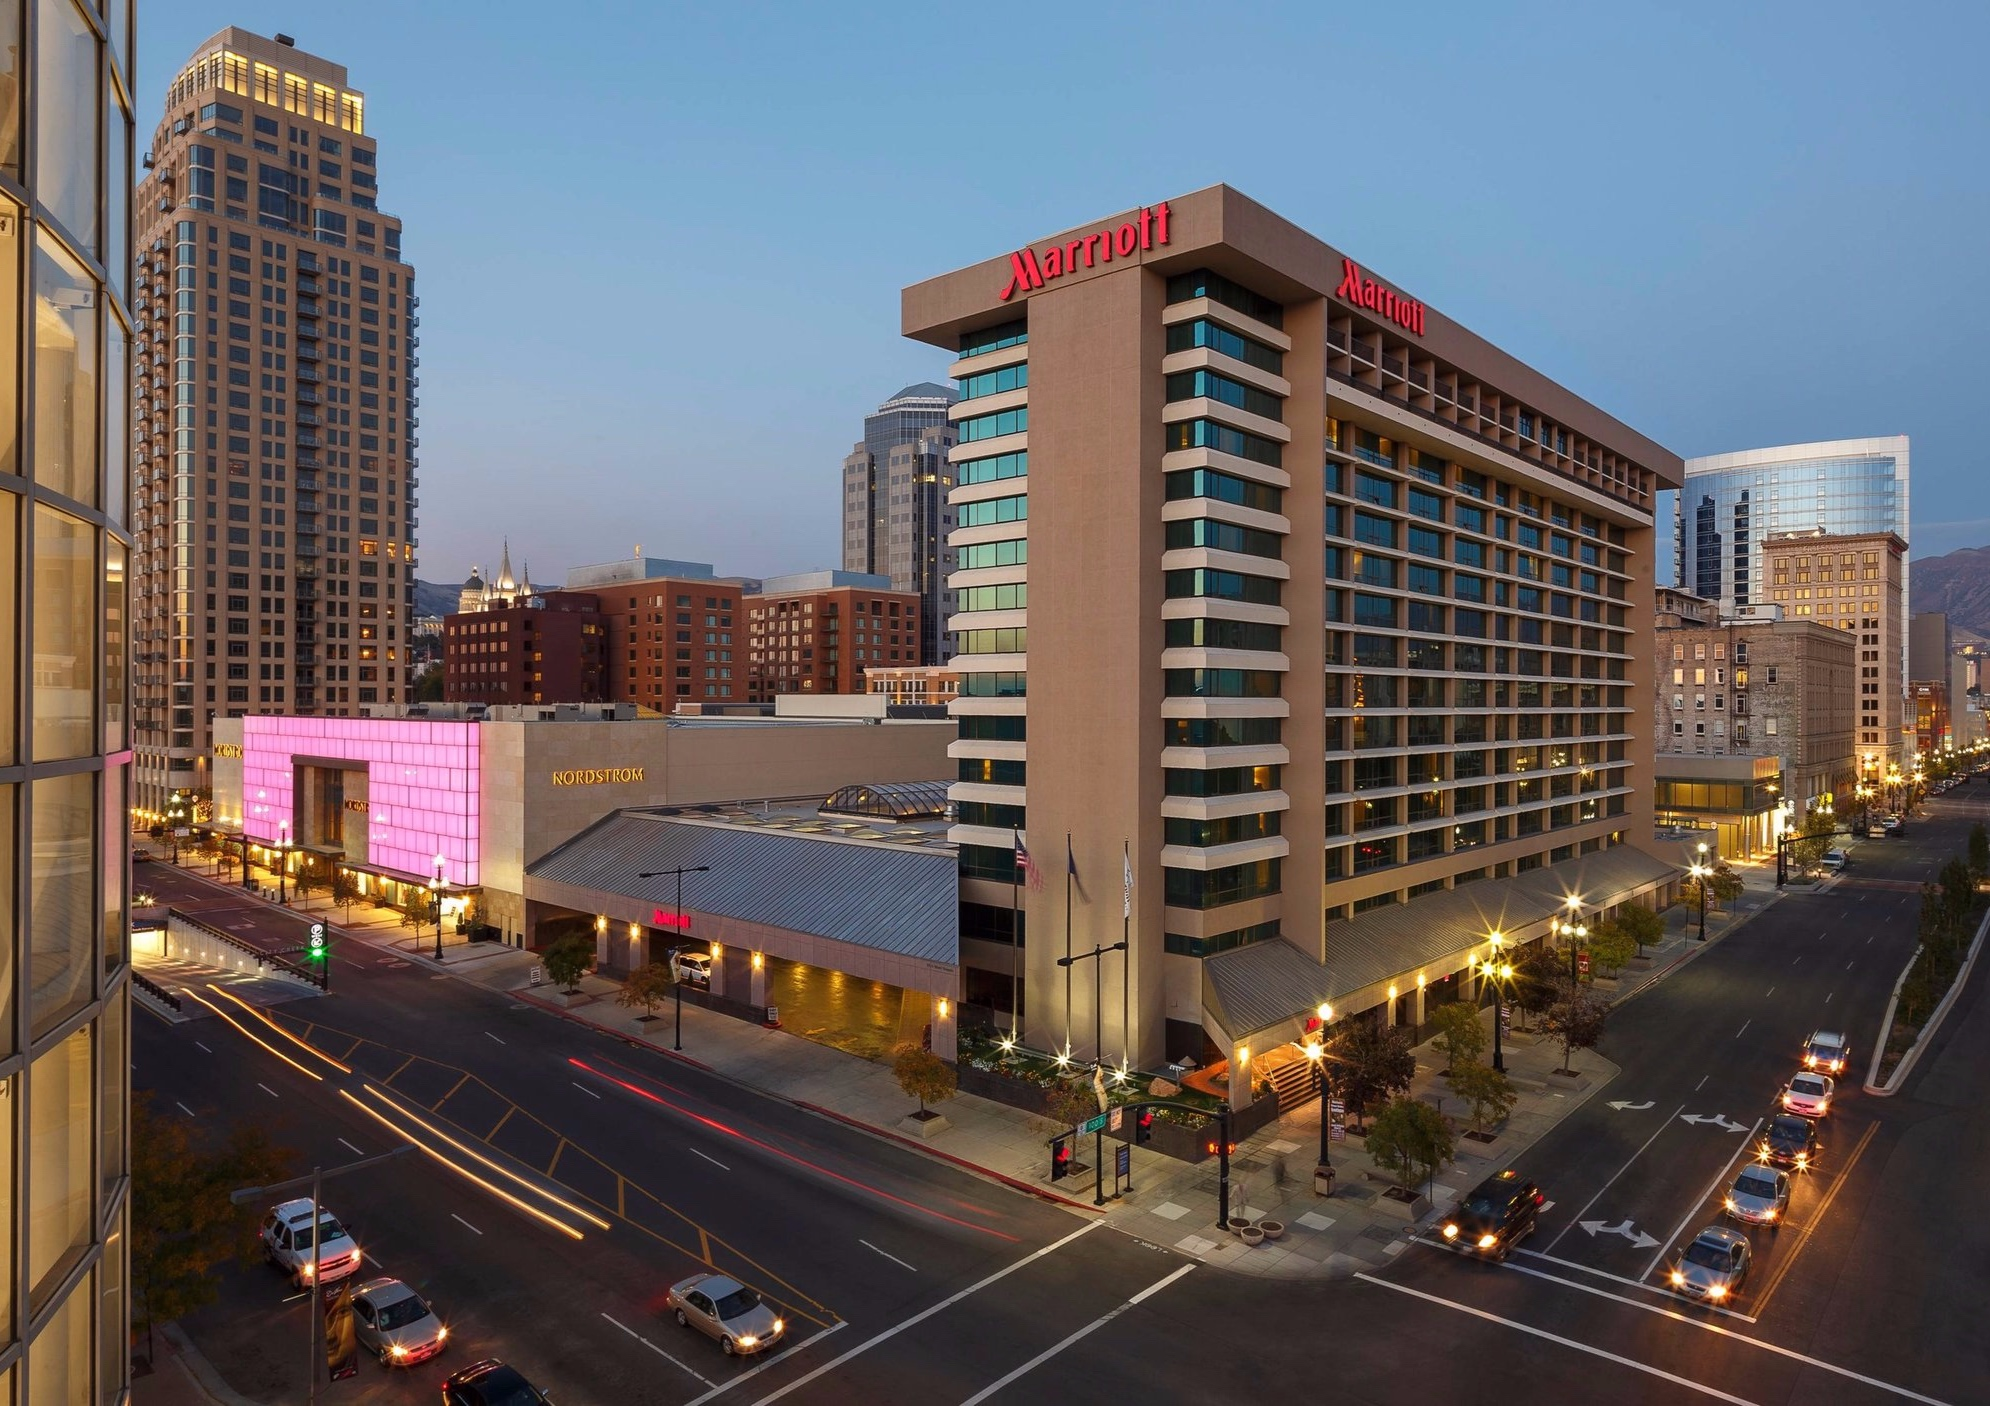 Hotel Registration - Join us at the Salt Lake Marriott Downtown at City Creek. Located in the heart of downtown, the City Creek Center hotel offers special rates for our conference.